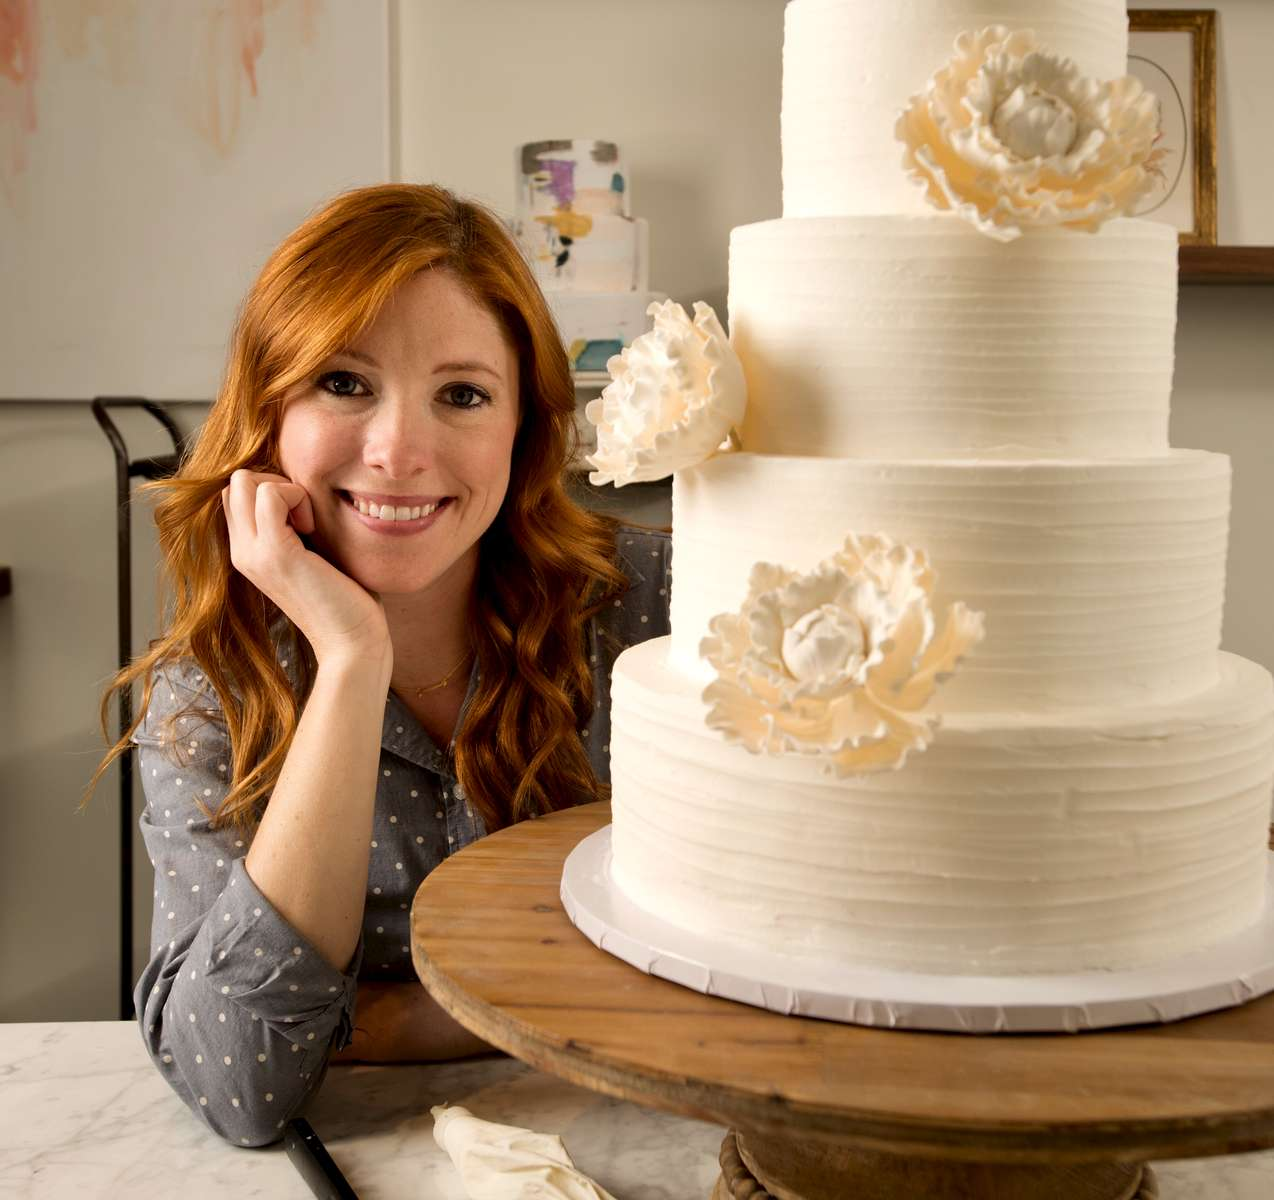 Kathryn Steed, owner of Lush Cakery. Her passion for baking started at a young age when she received her first easy bake oven. Over the years, her love for baking grew and she longed to one day have a career in cake design. After attending Kennesaw State University and earning a degree in marketing, she pursued a corporate job that left her wildly unfulfilled. She decided to follow her heart in pursuit of her confectionery dreams.